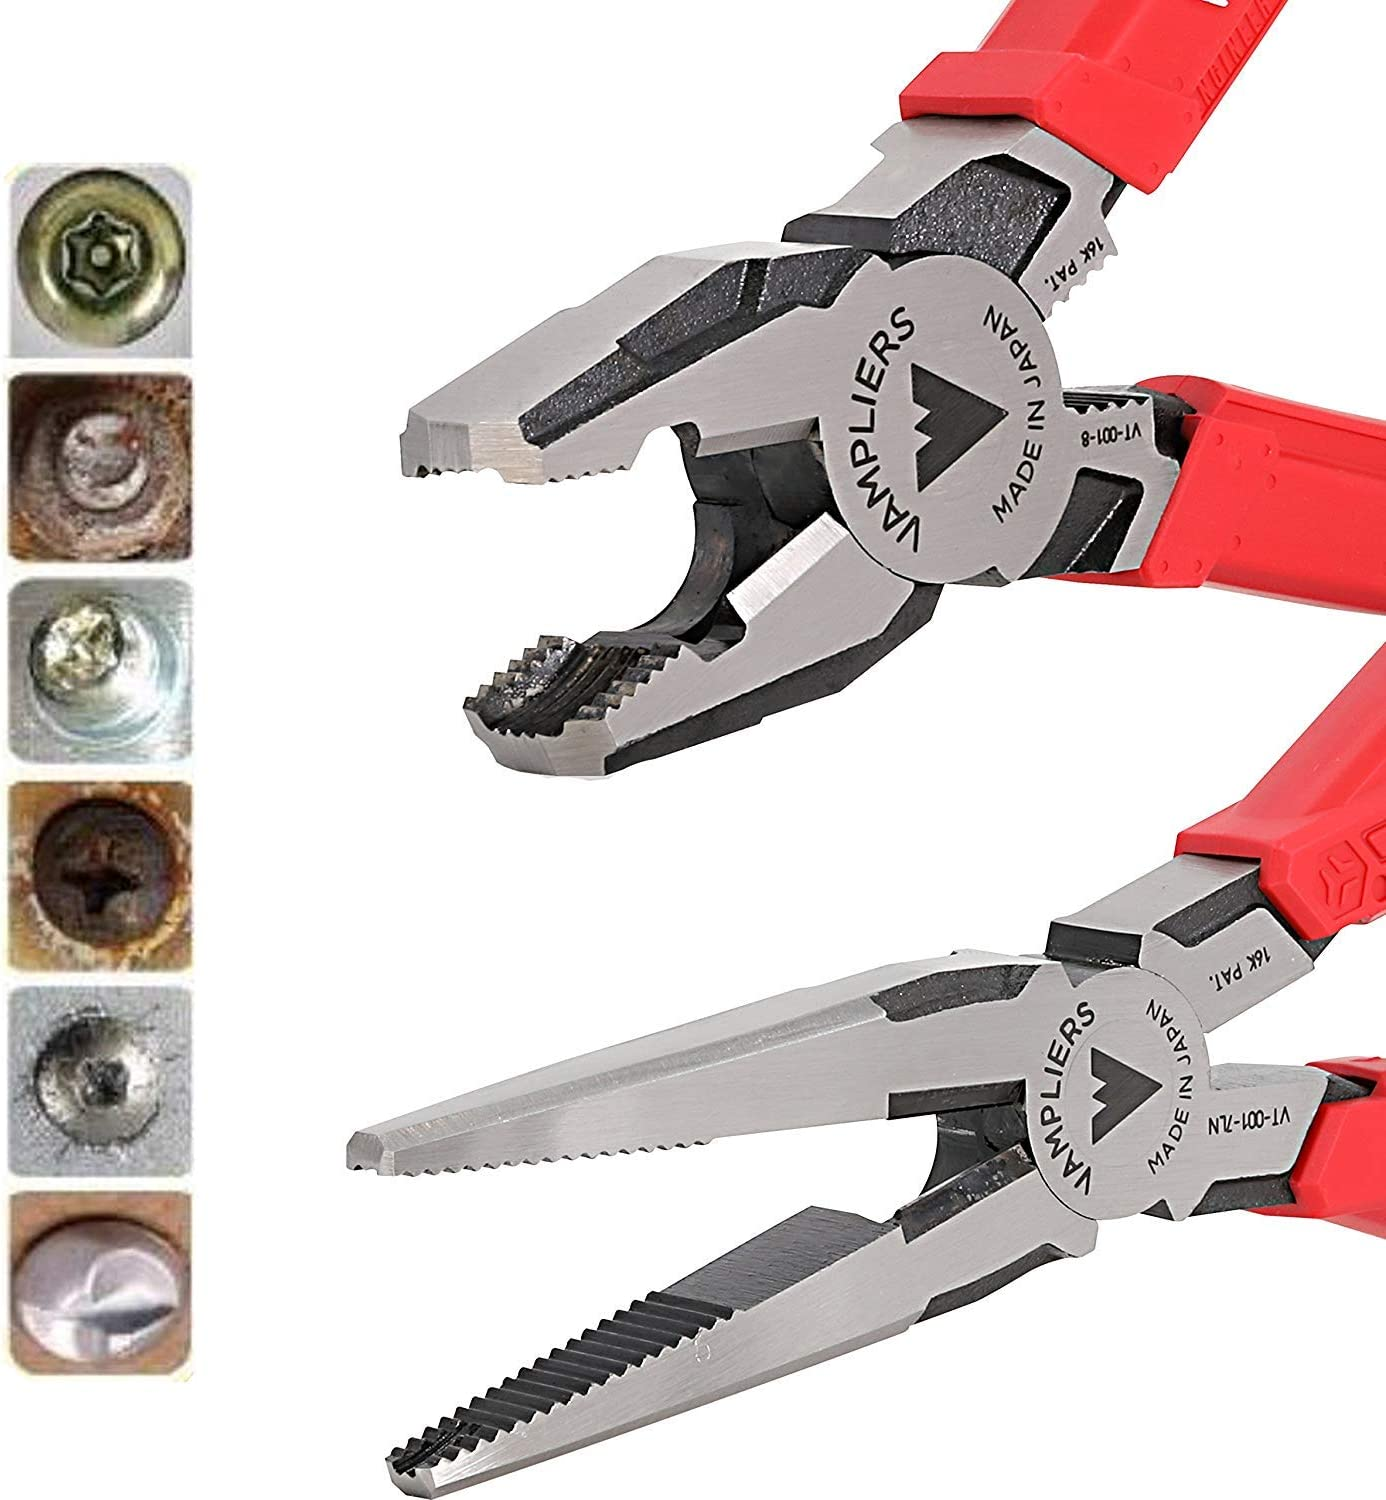 VamPLIERS World's Max 71% OFF Best Award Pliers VT-001-S2J Damage Rusted Security